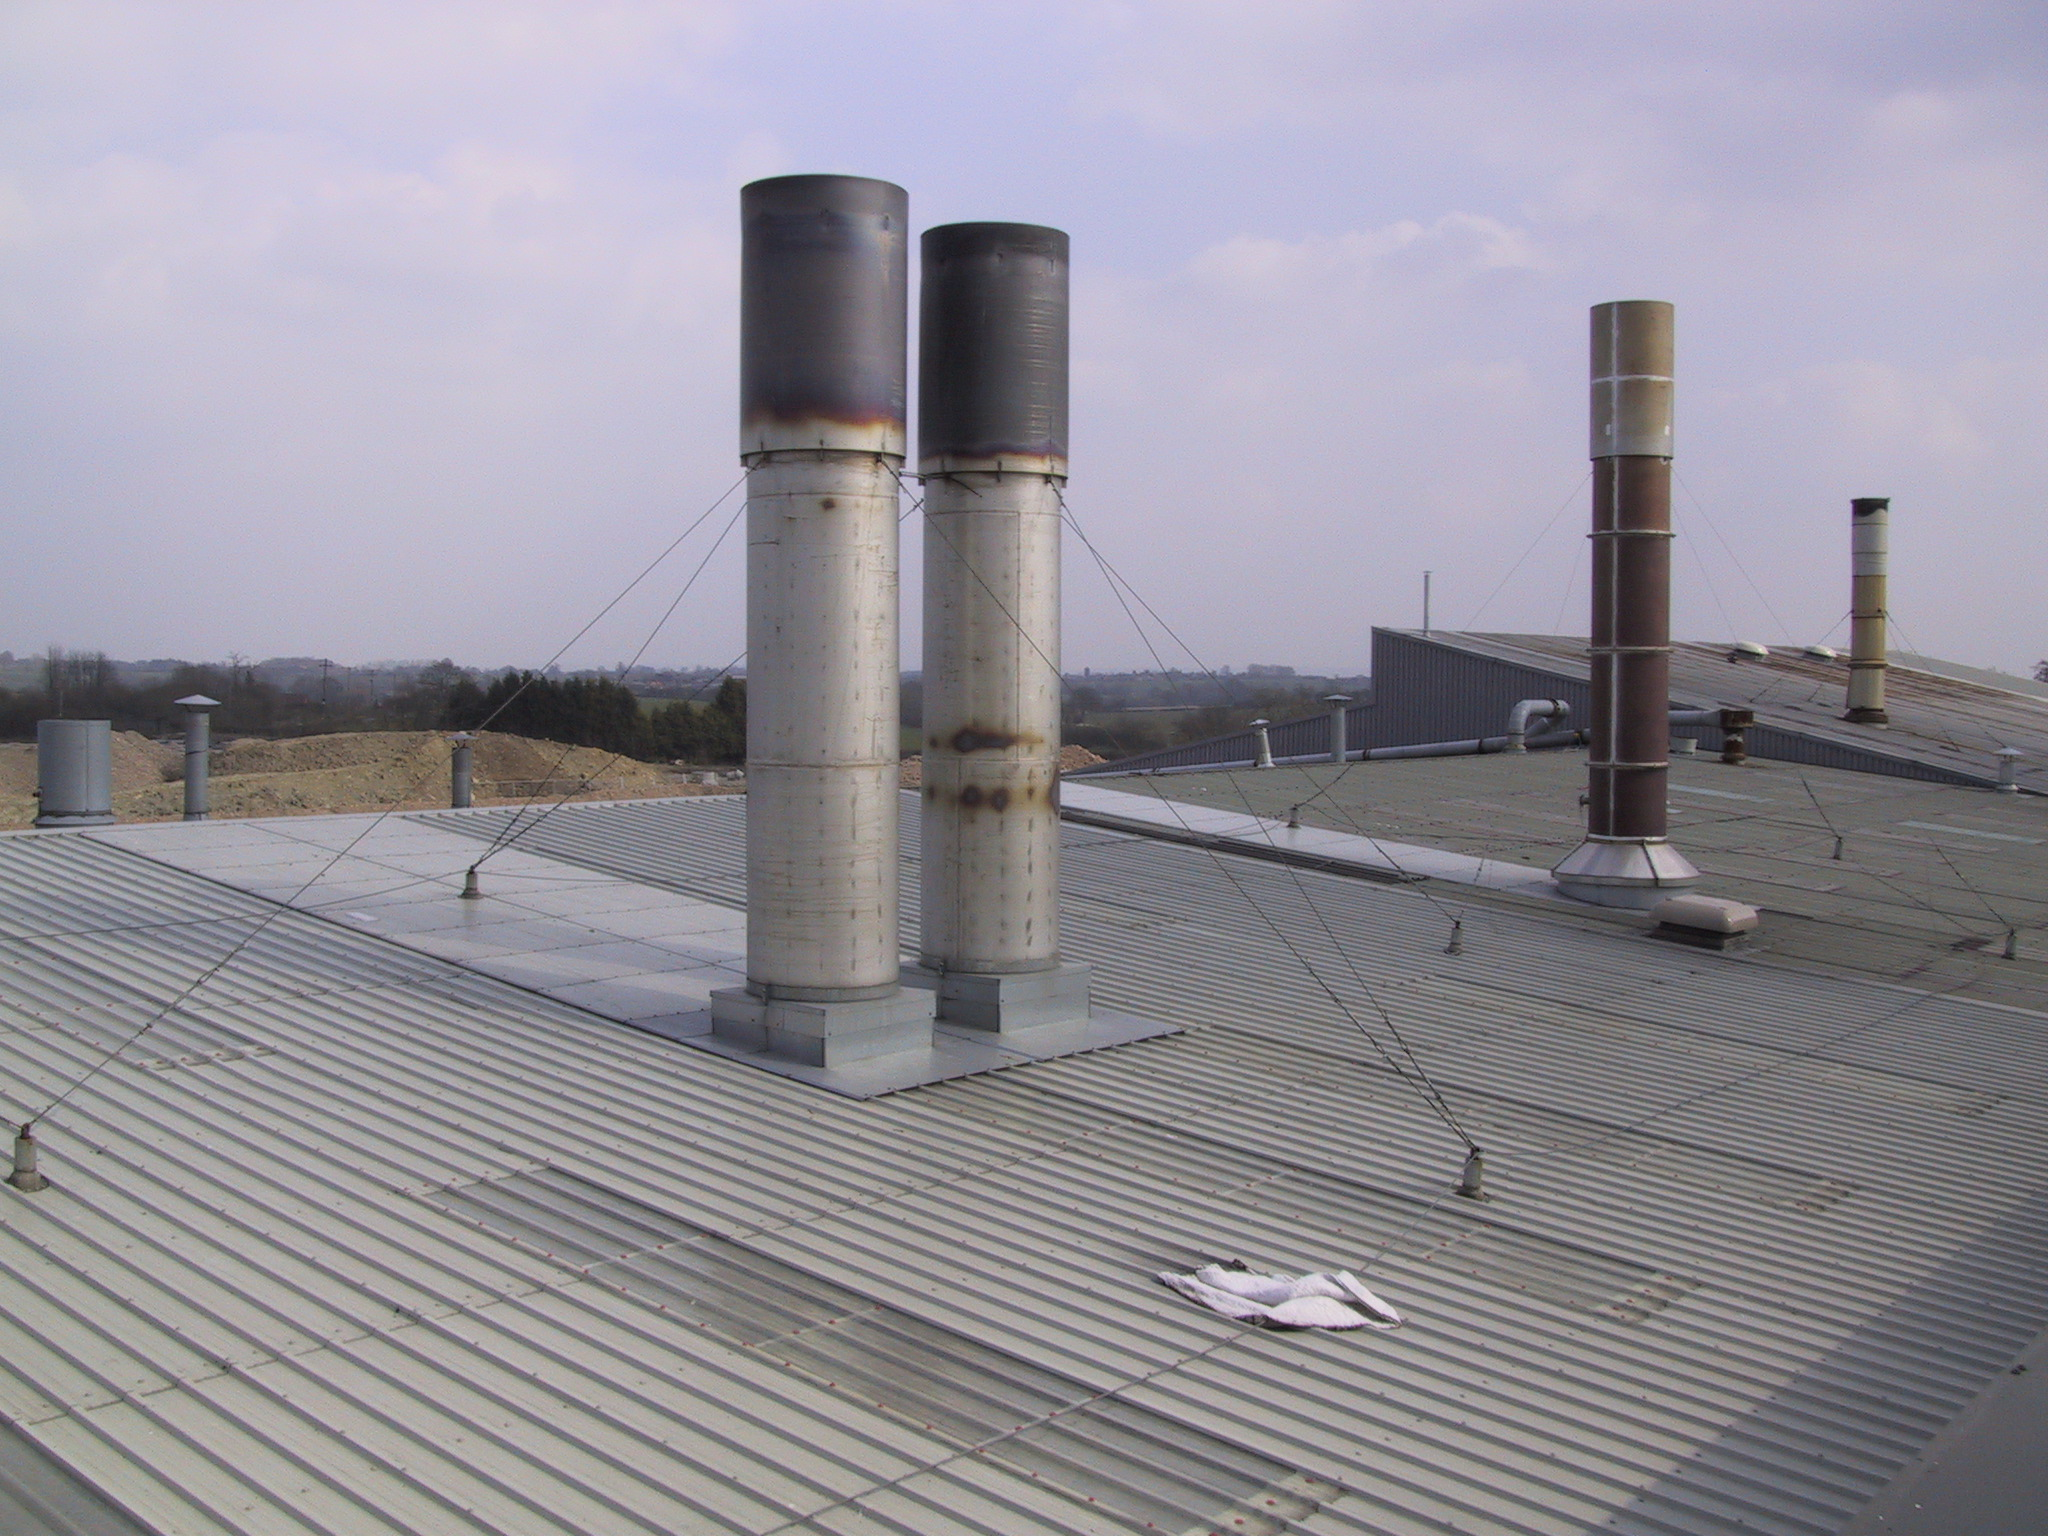 Leaking Chimney In Factory Roof